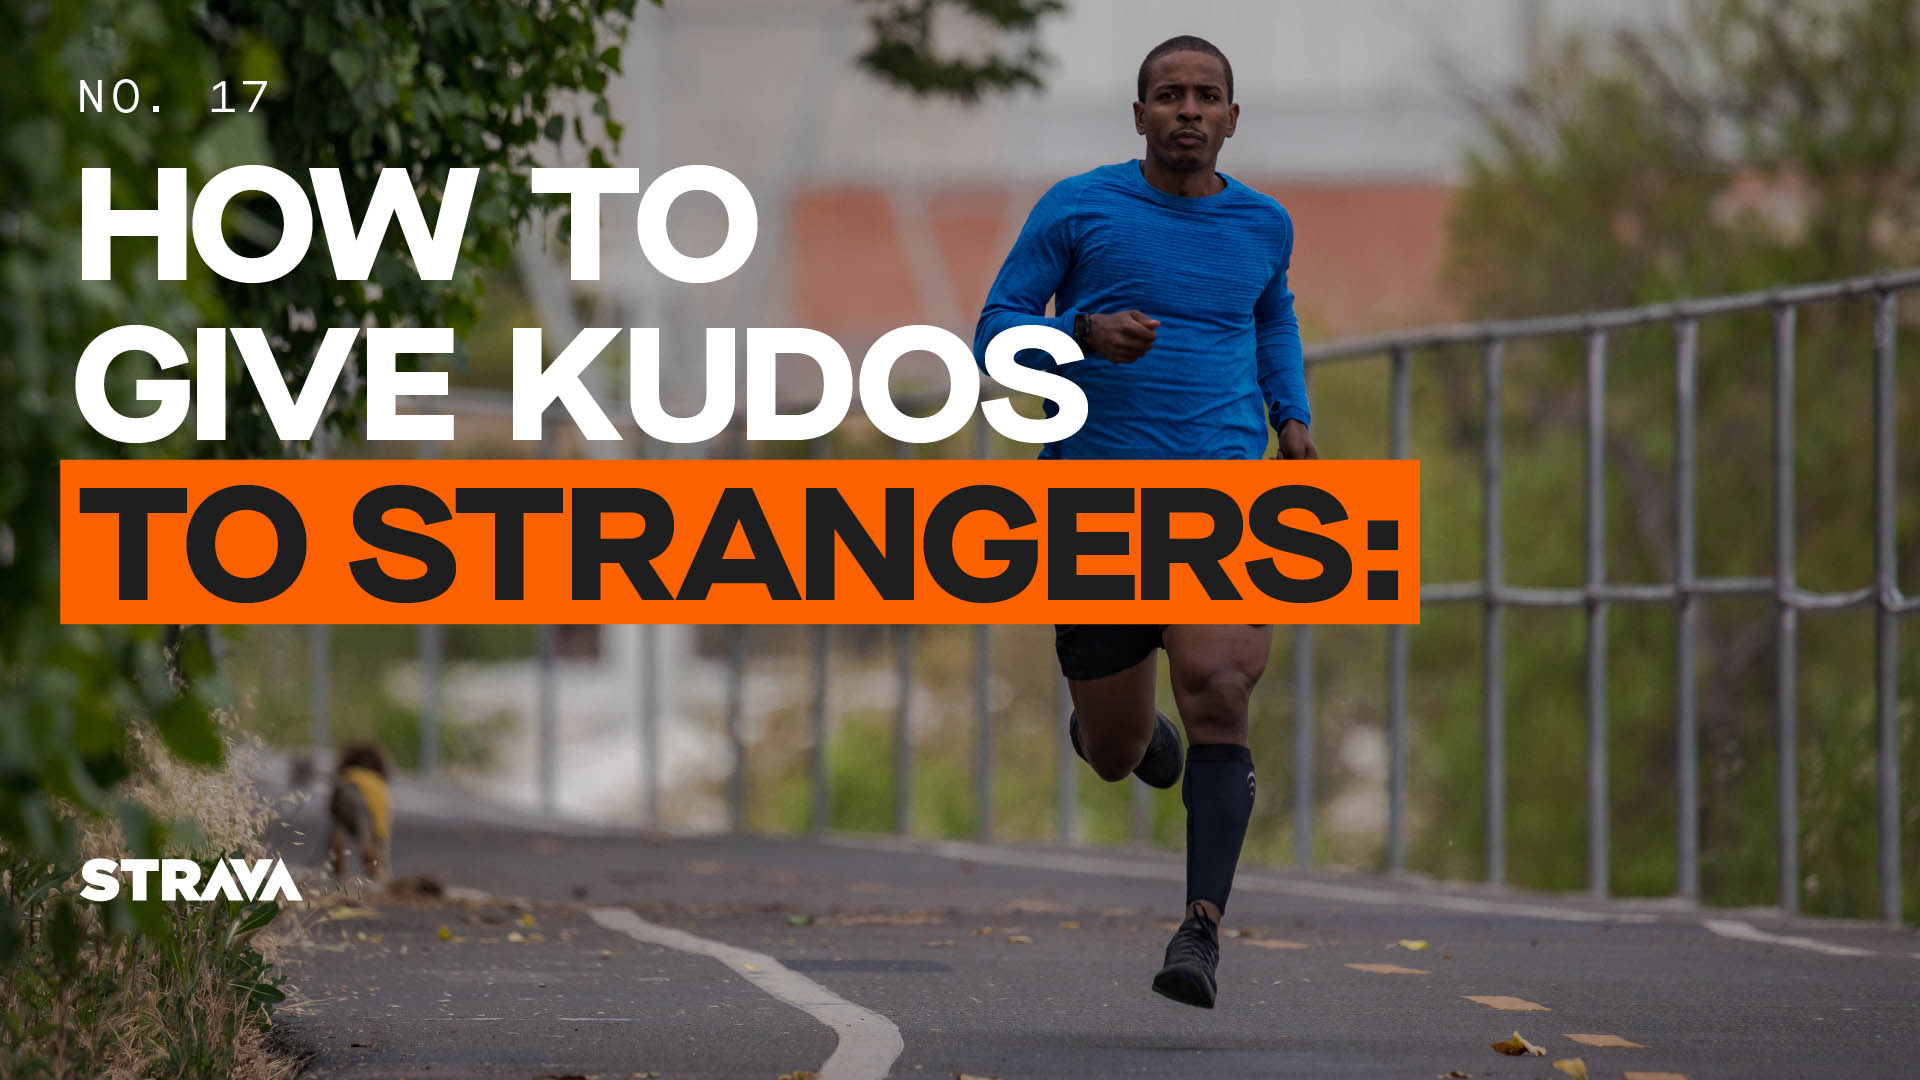 How to Give Kudos to Strangers